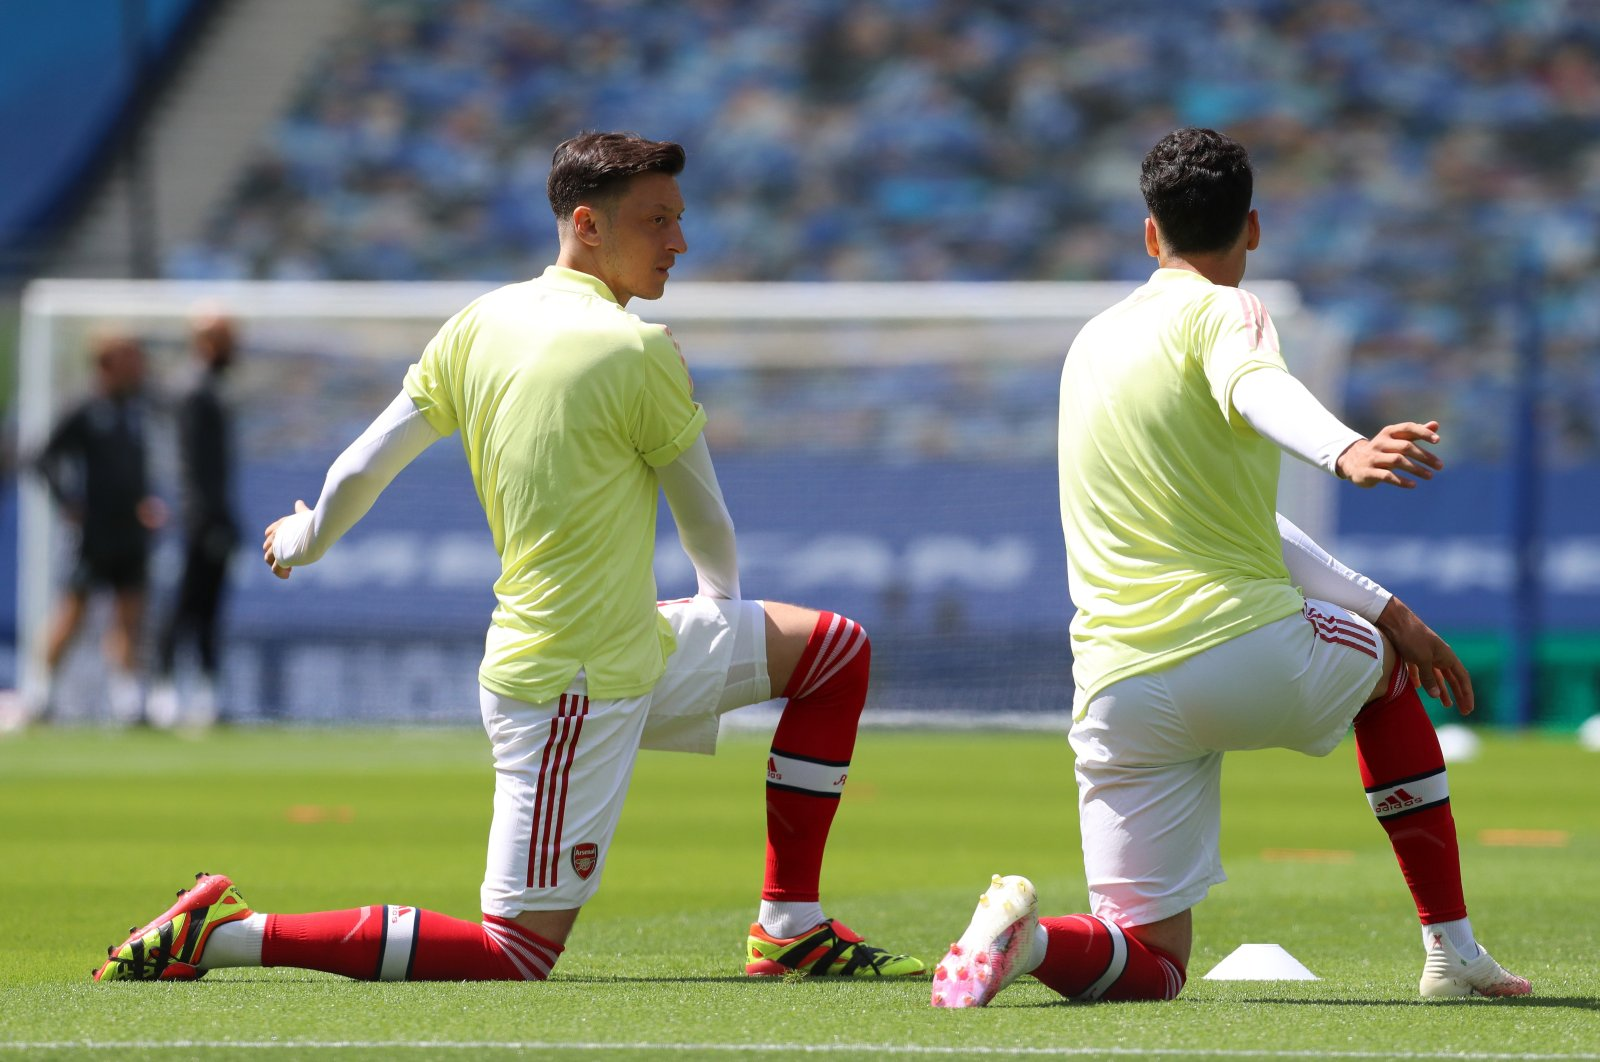 Mesut Özil (L) warms up before a match, in Brighton, Britain, June 20, 2020. (REUTERS PHOTO)